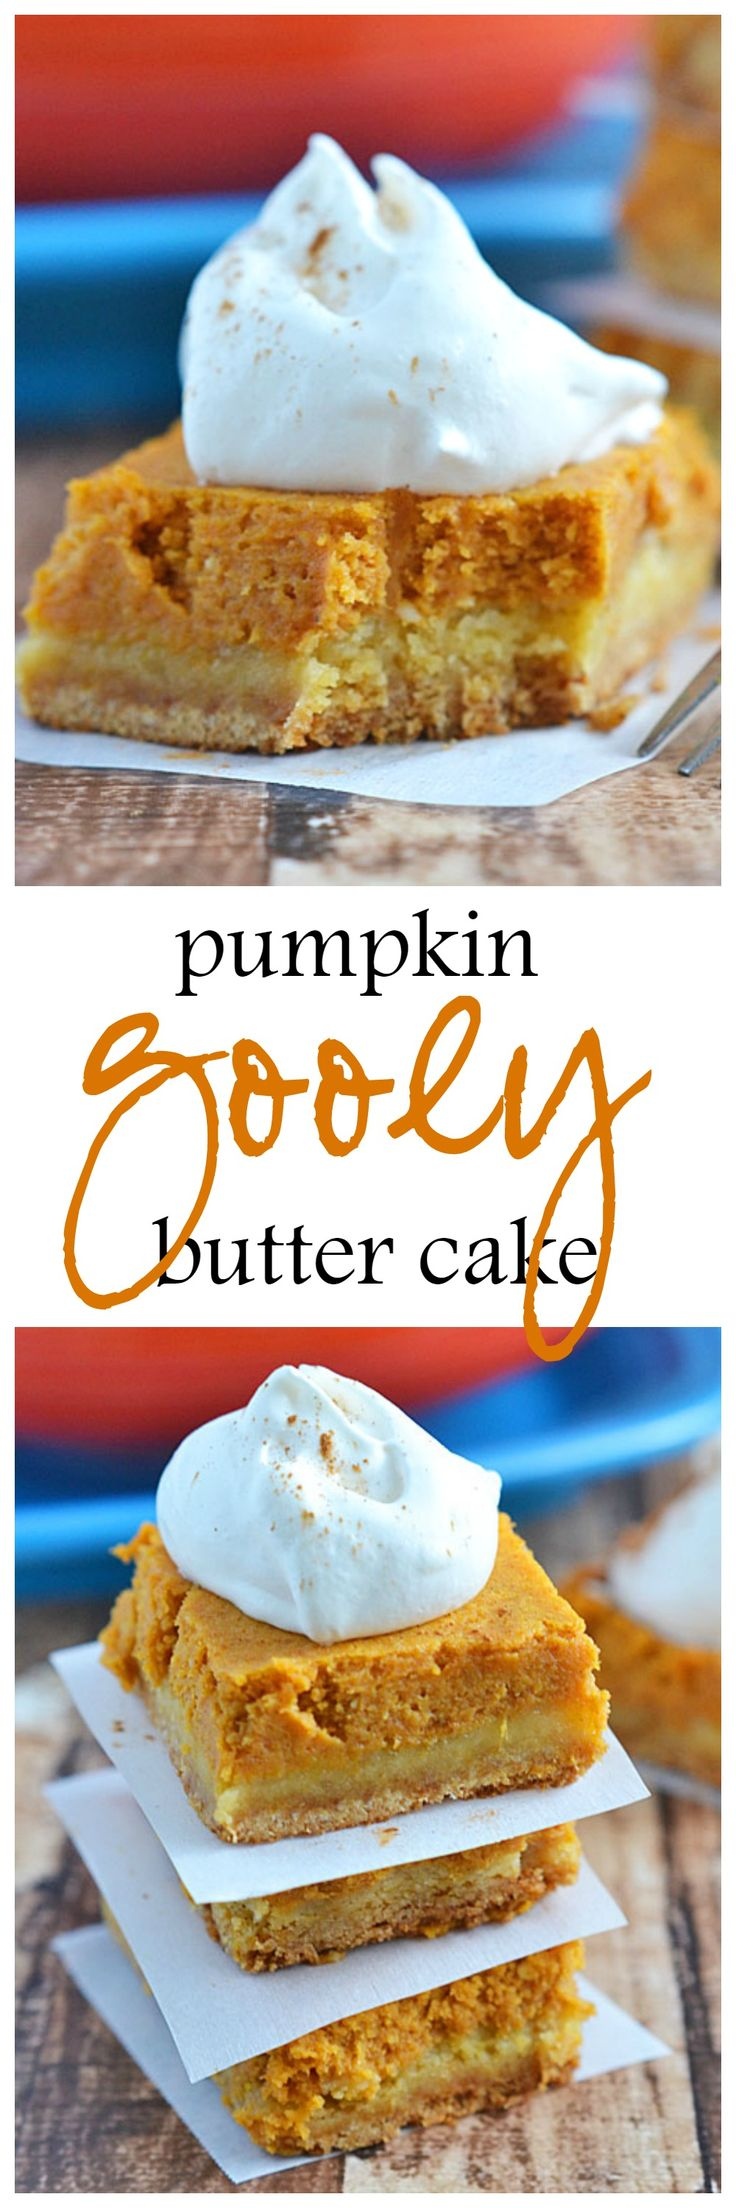 easy to make and truly delicious, this Pumpkin Gooey Butter Cake ...